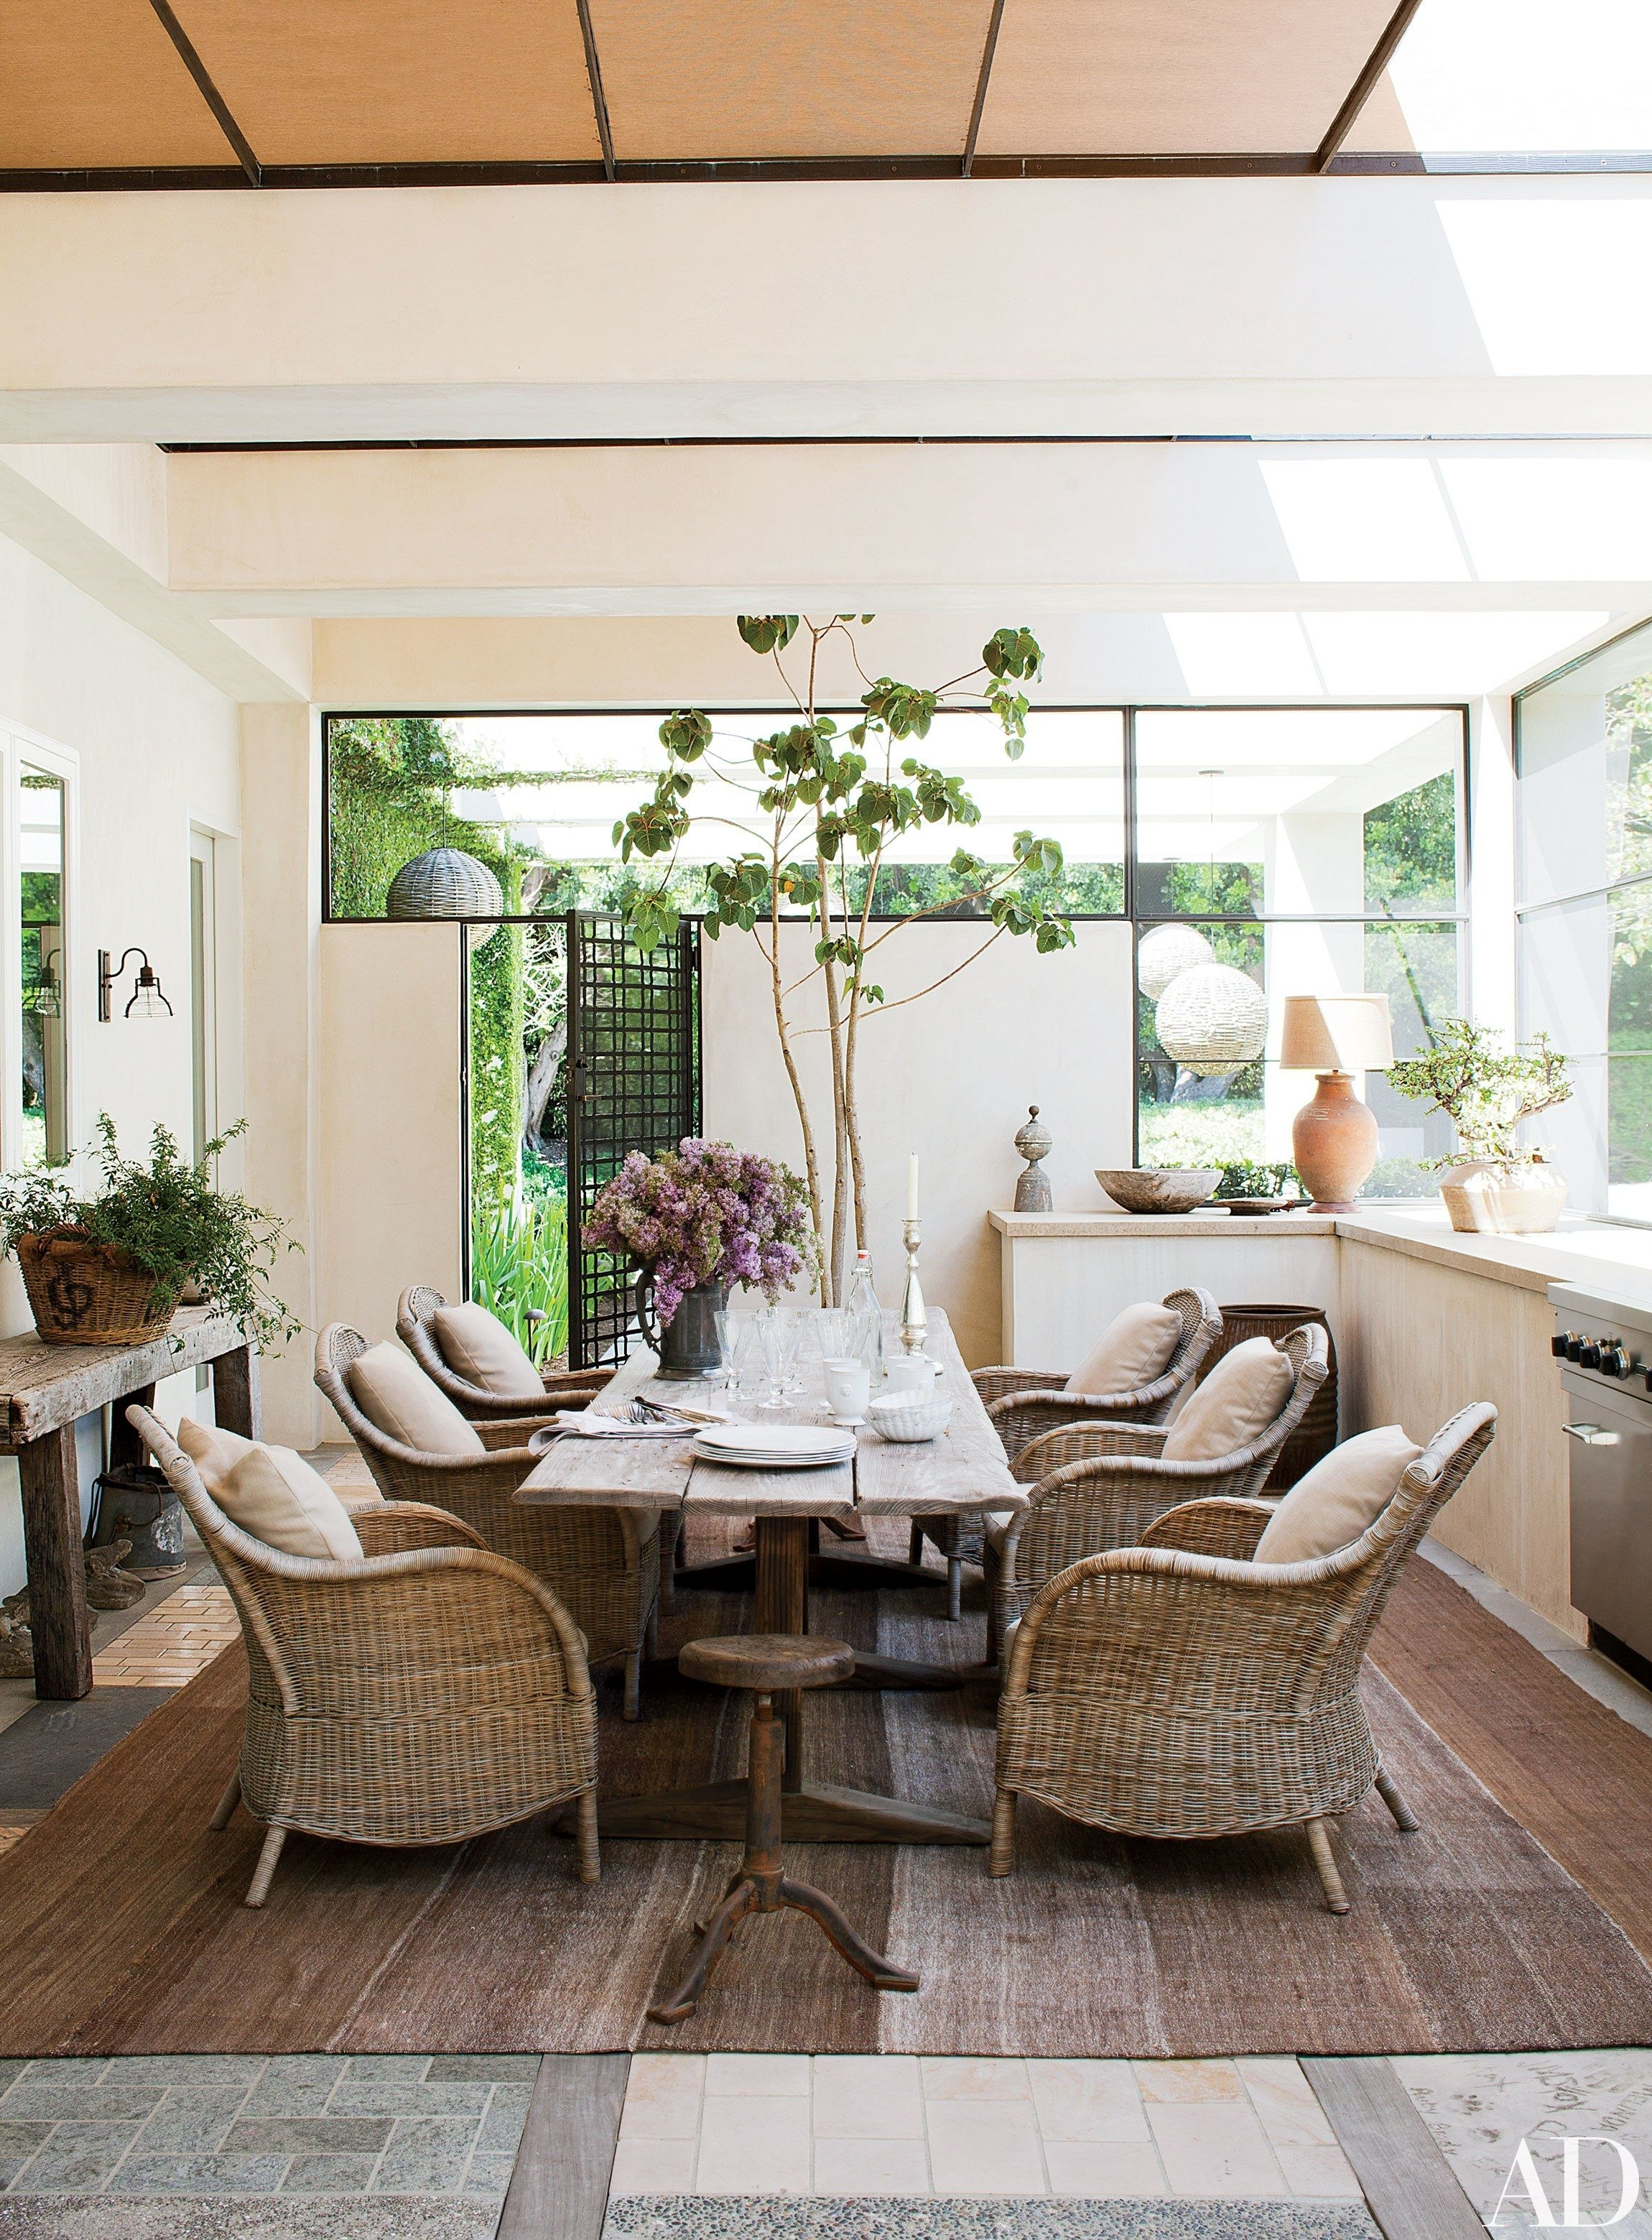 Picture of: Wicker Indoor Dining Chairs Ideas On Foter